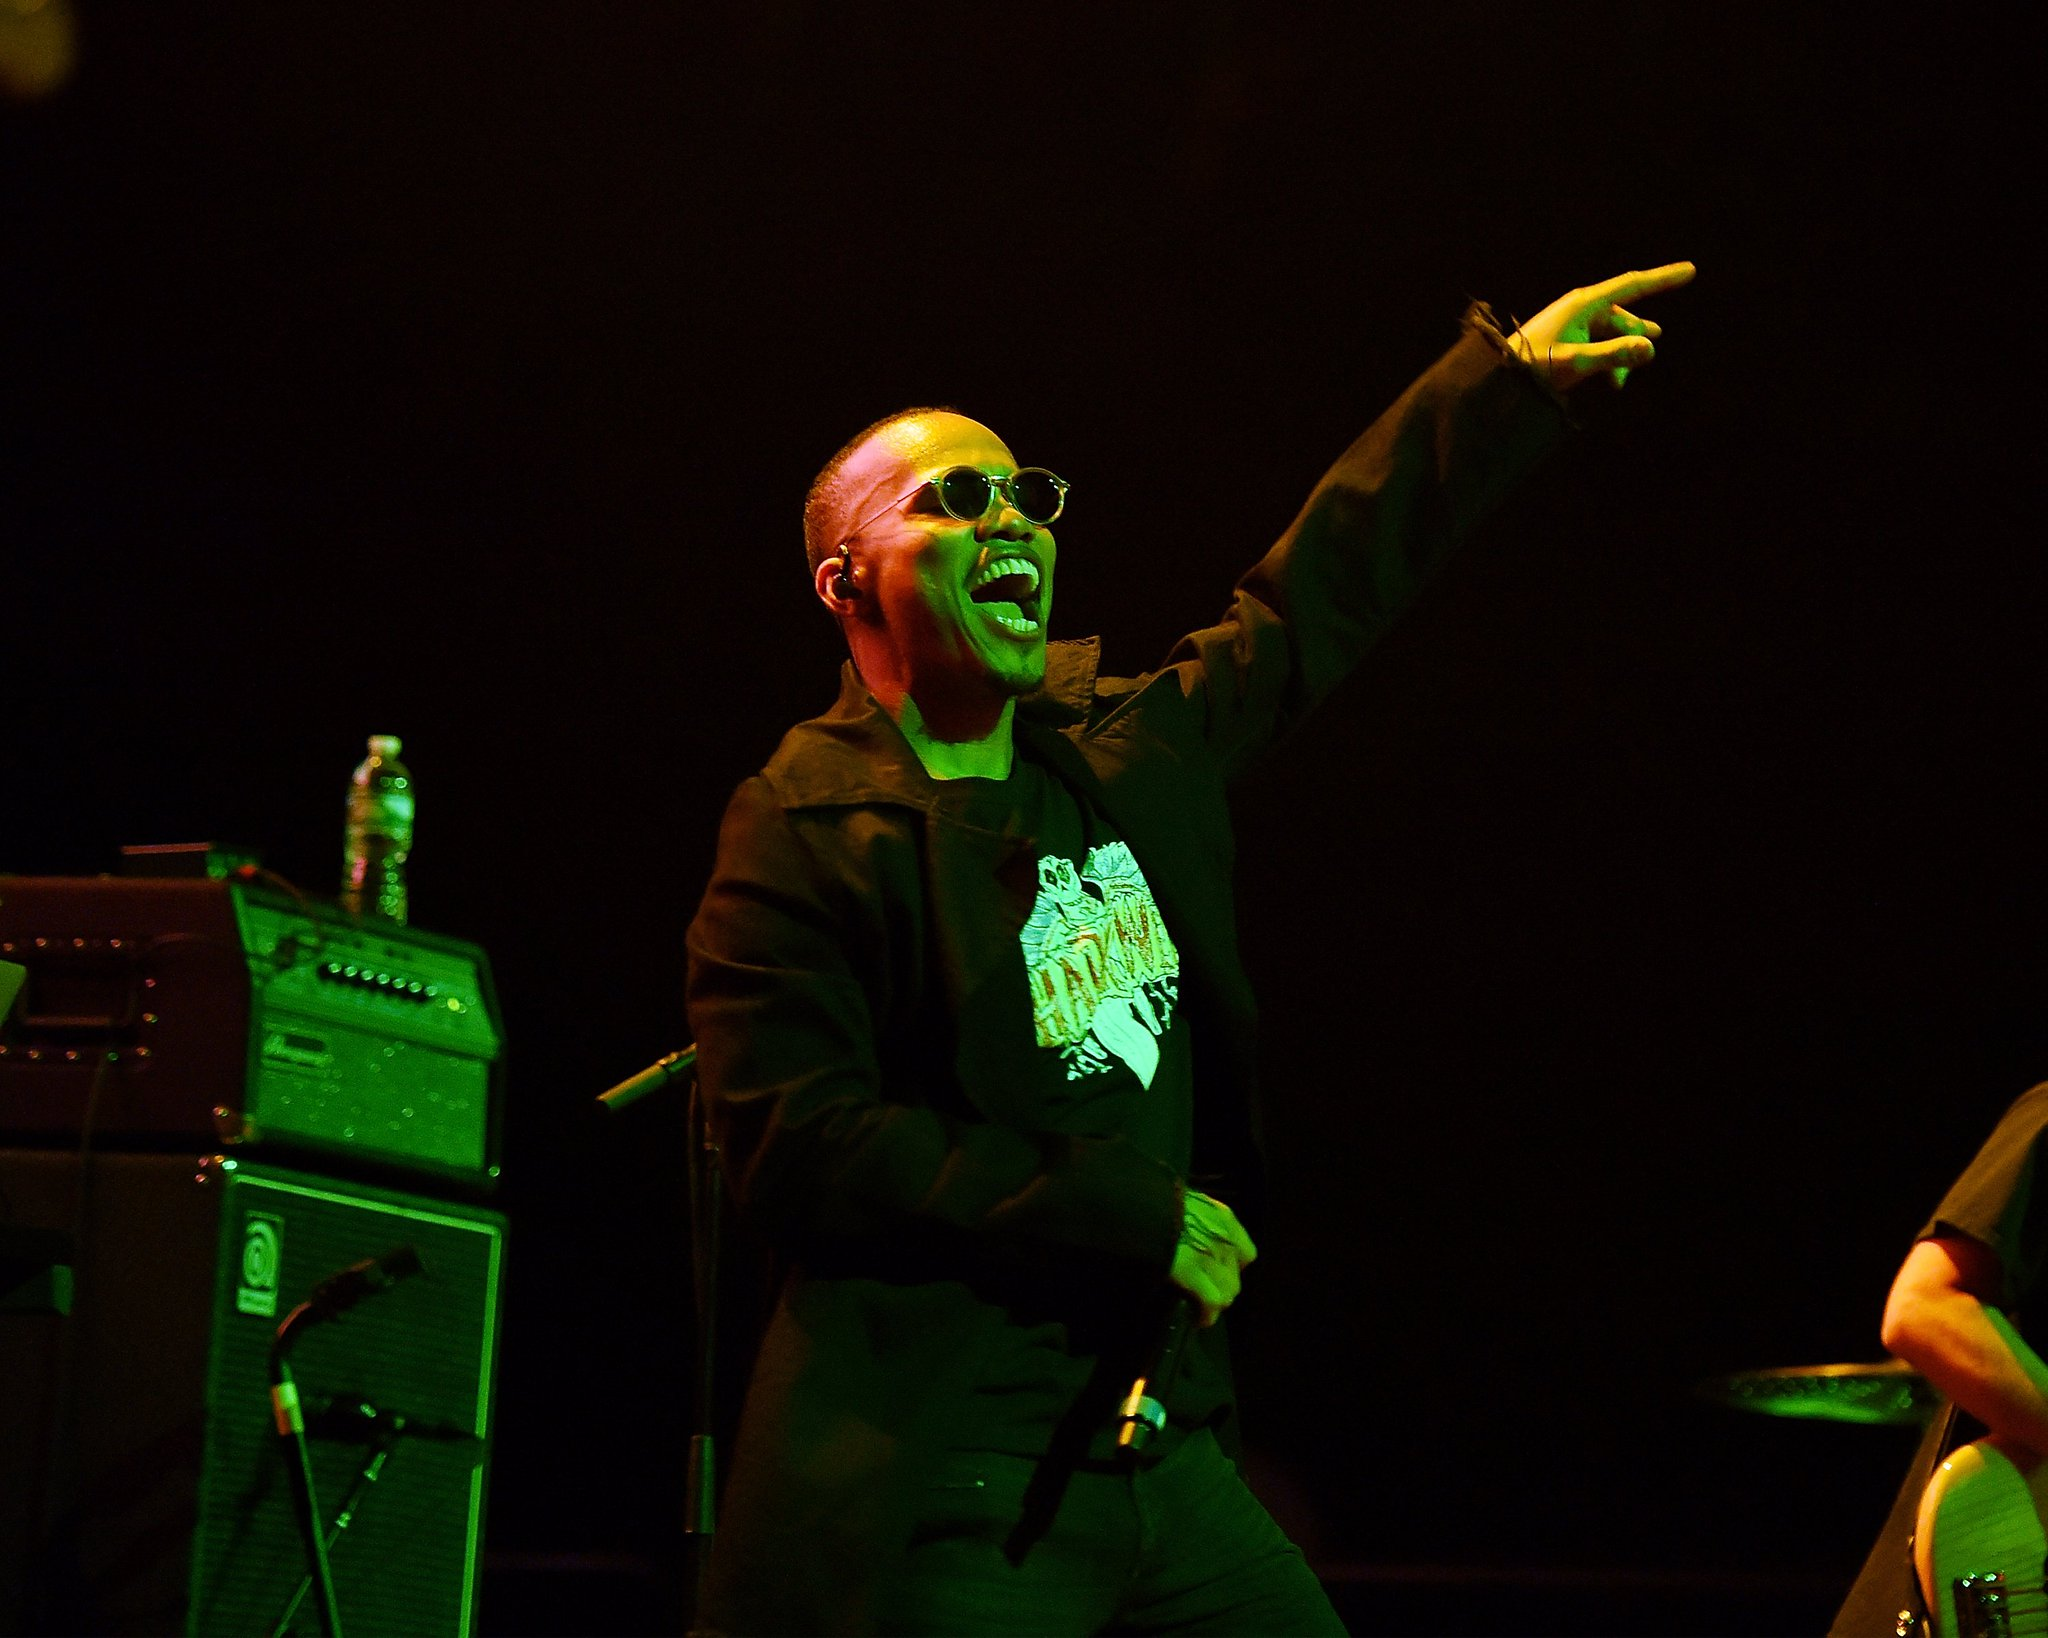 .@AndersonPaak is prepping a new album for 2018. https://t.co/wUCZMx5rpn https://t.co/zdtQ1syGd9